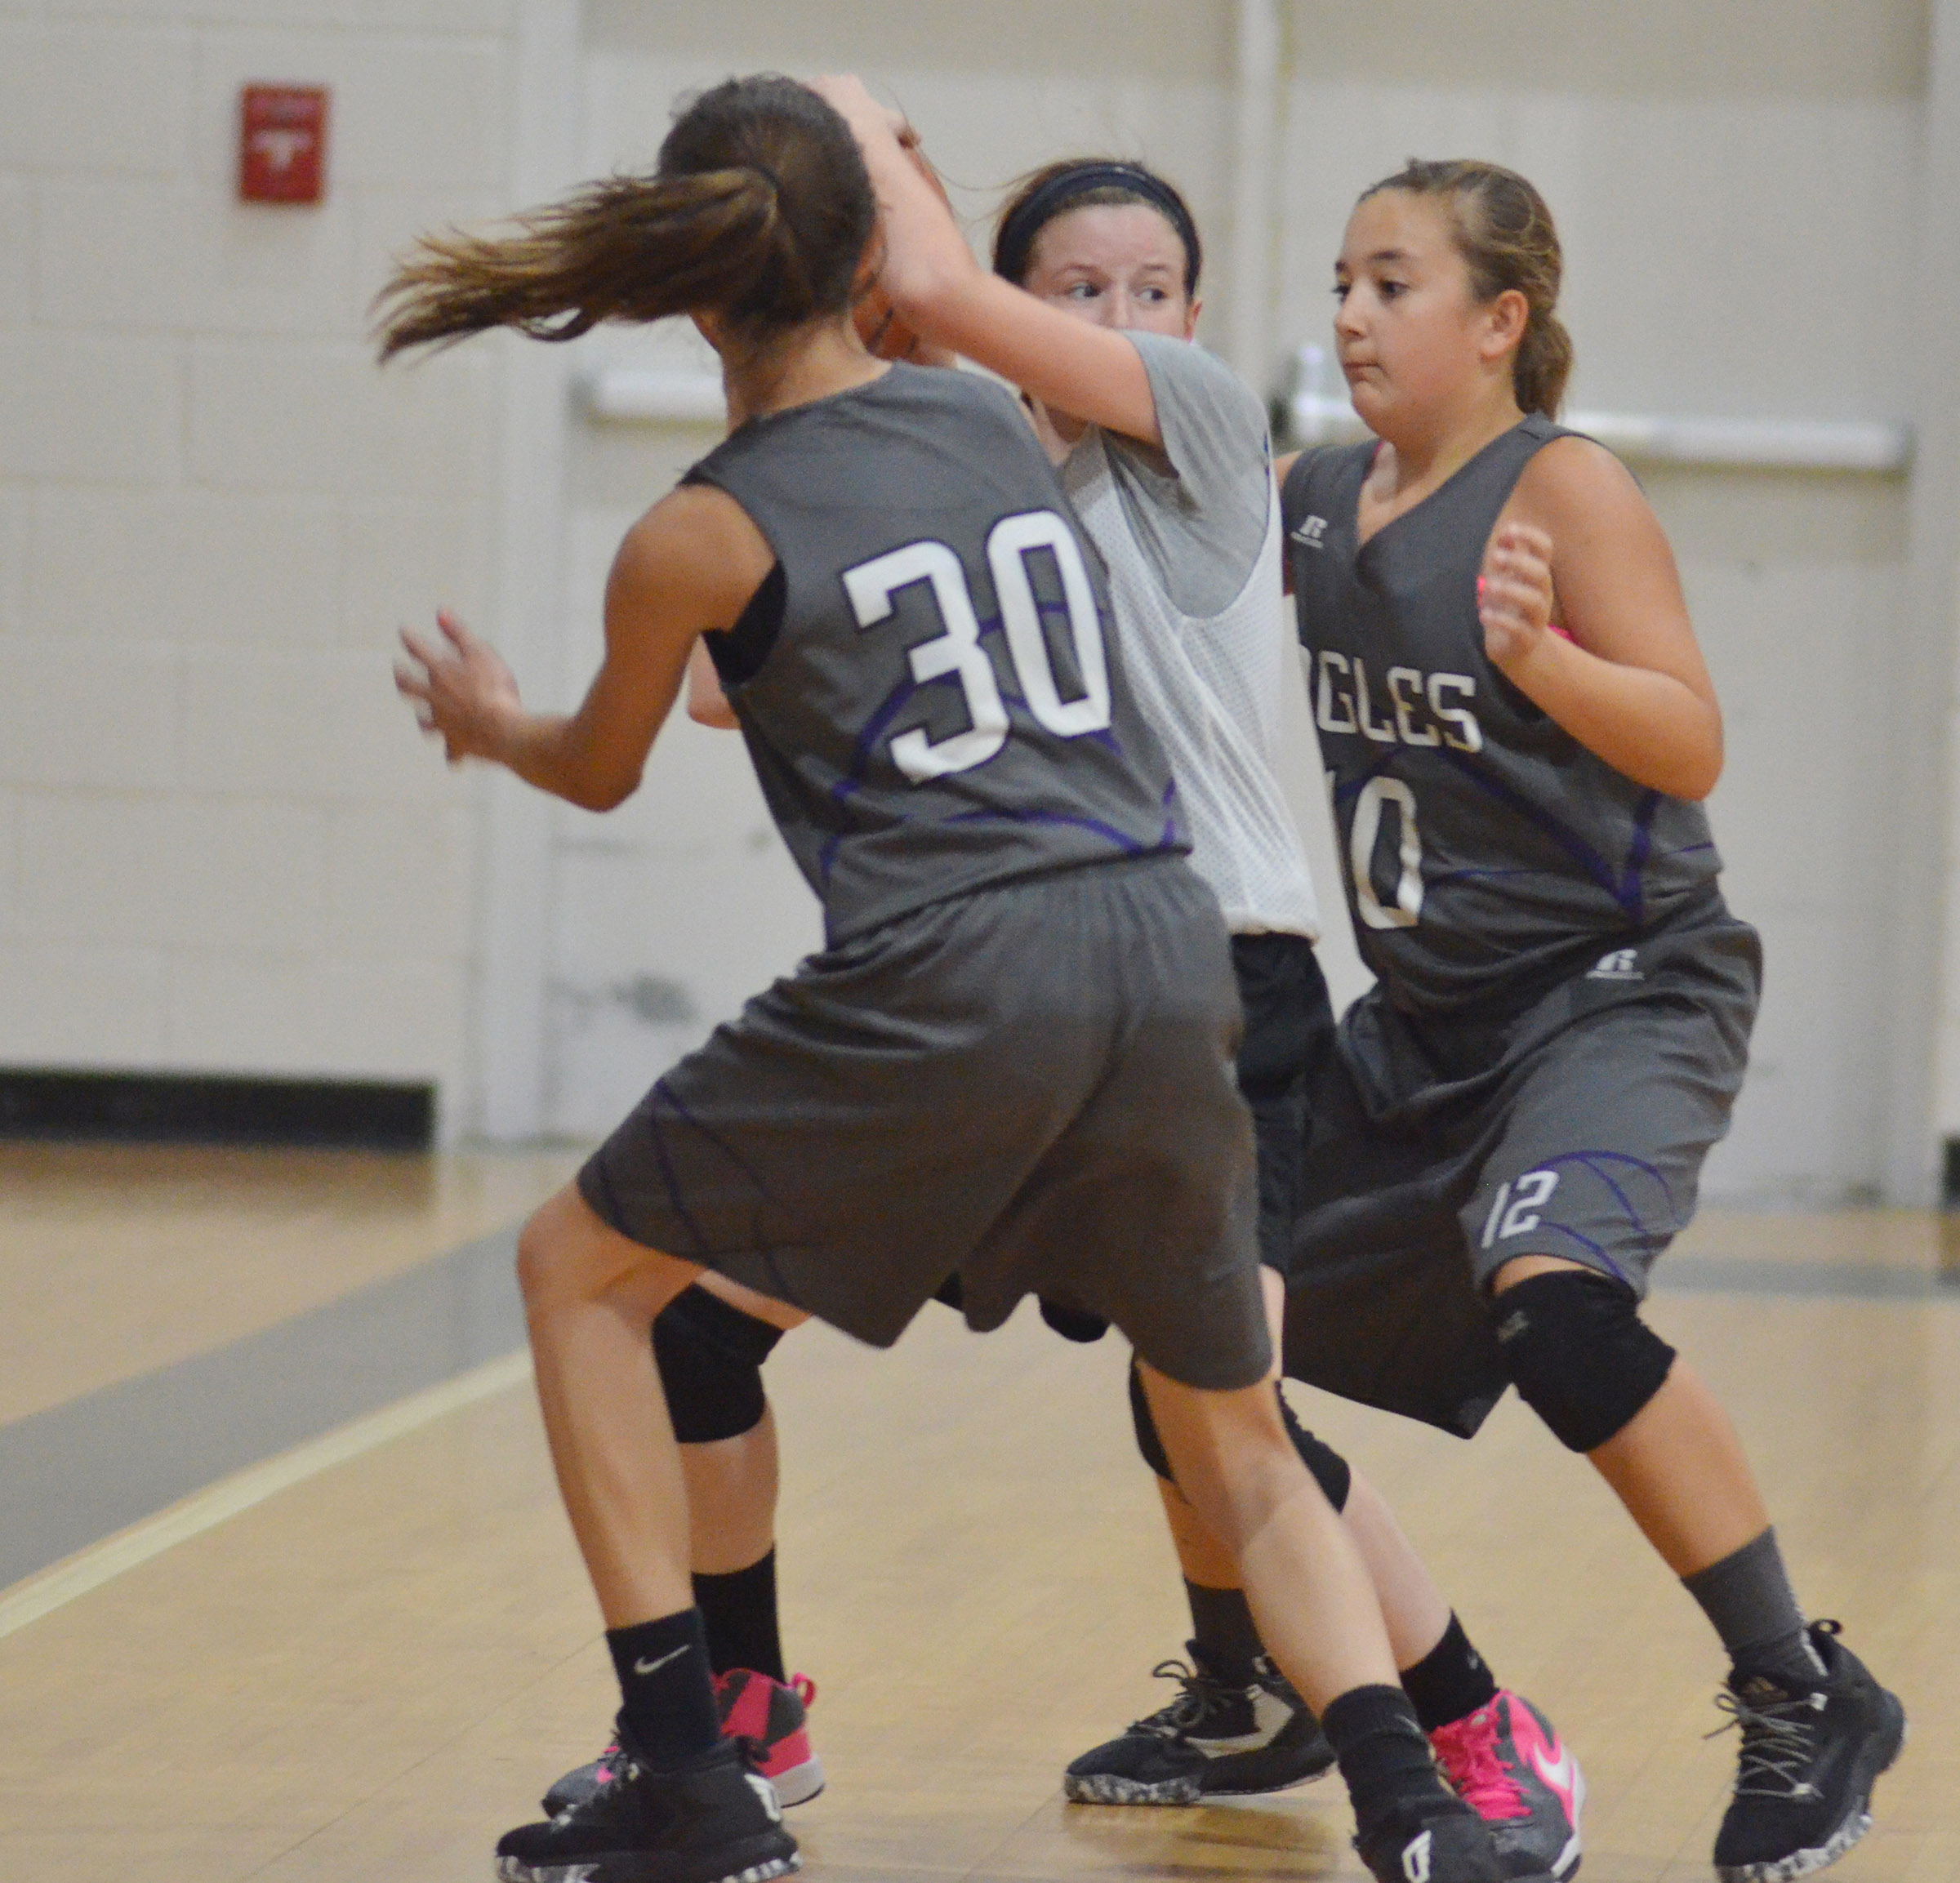 CMS seventh-graders Bri Hayes, at left, and Briana Davis battle for the ball.